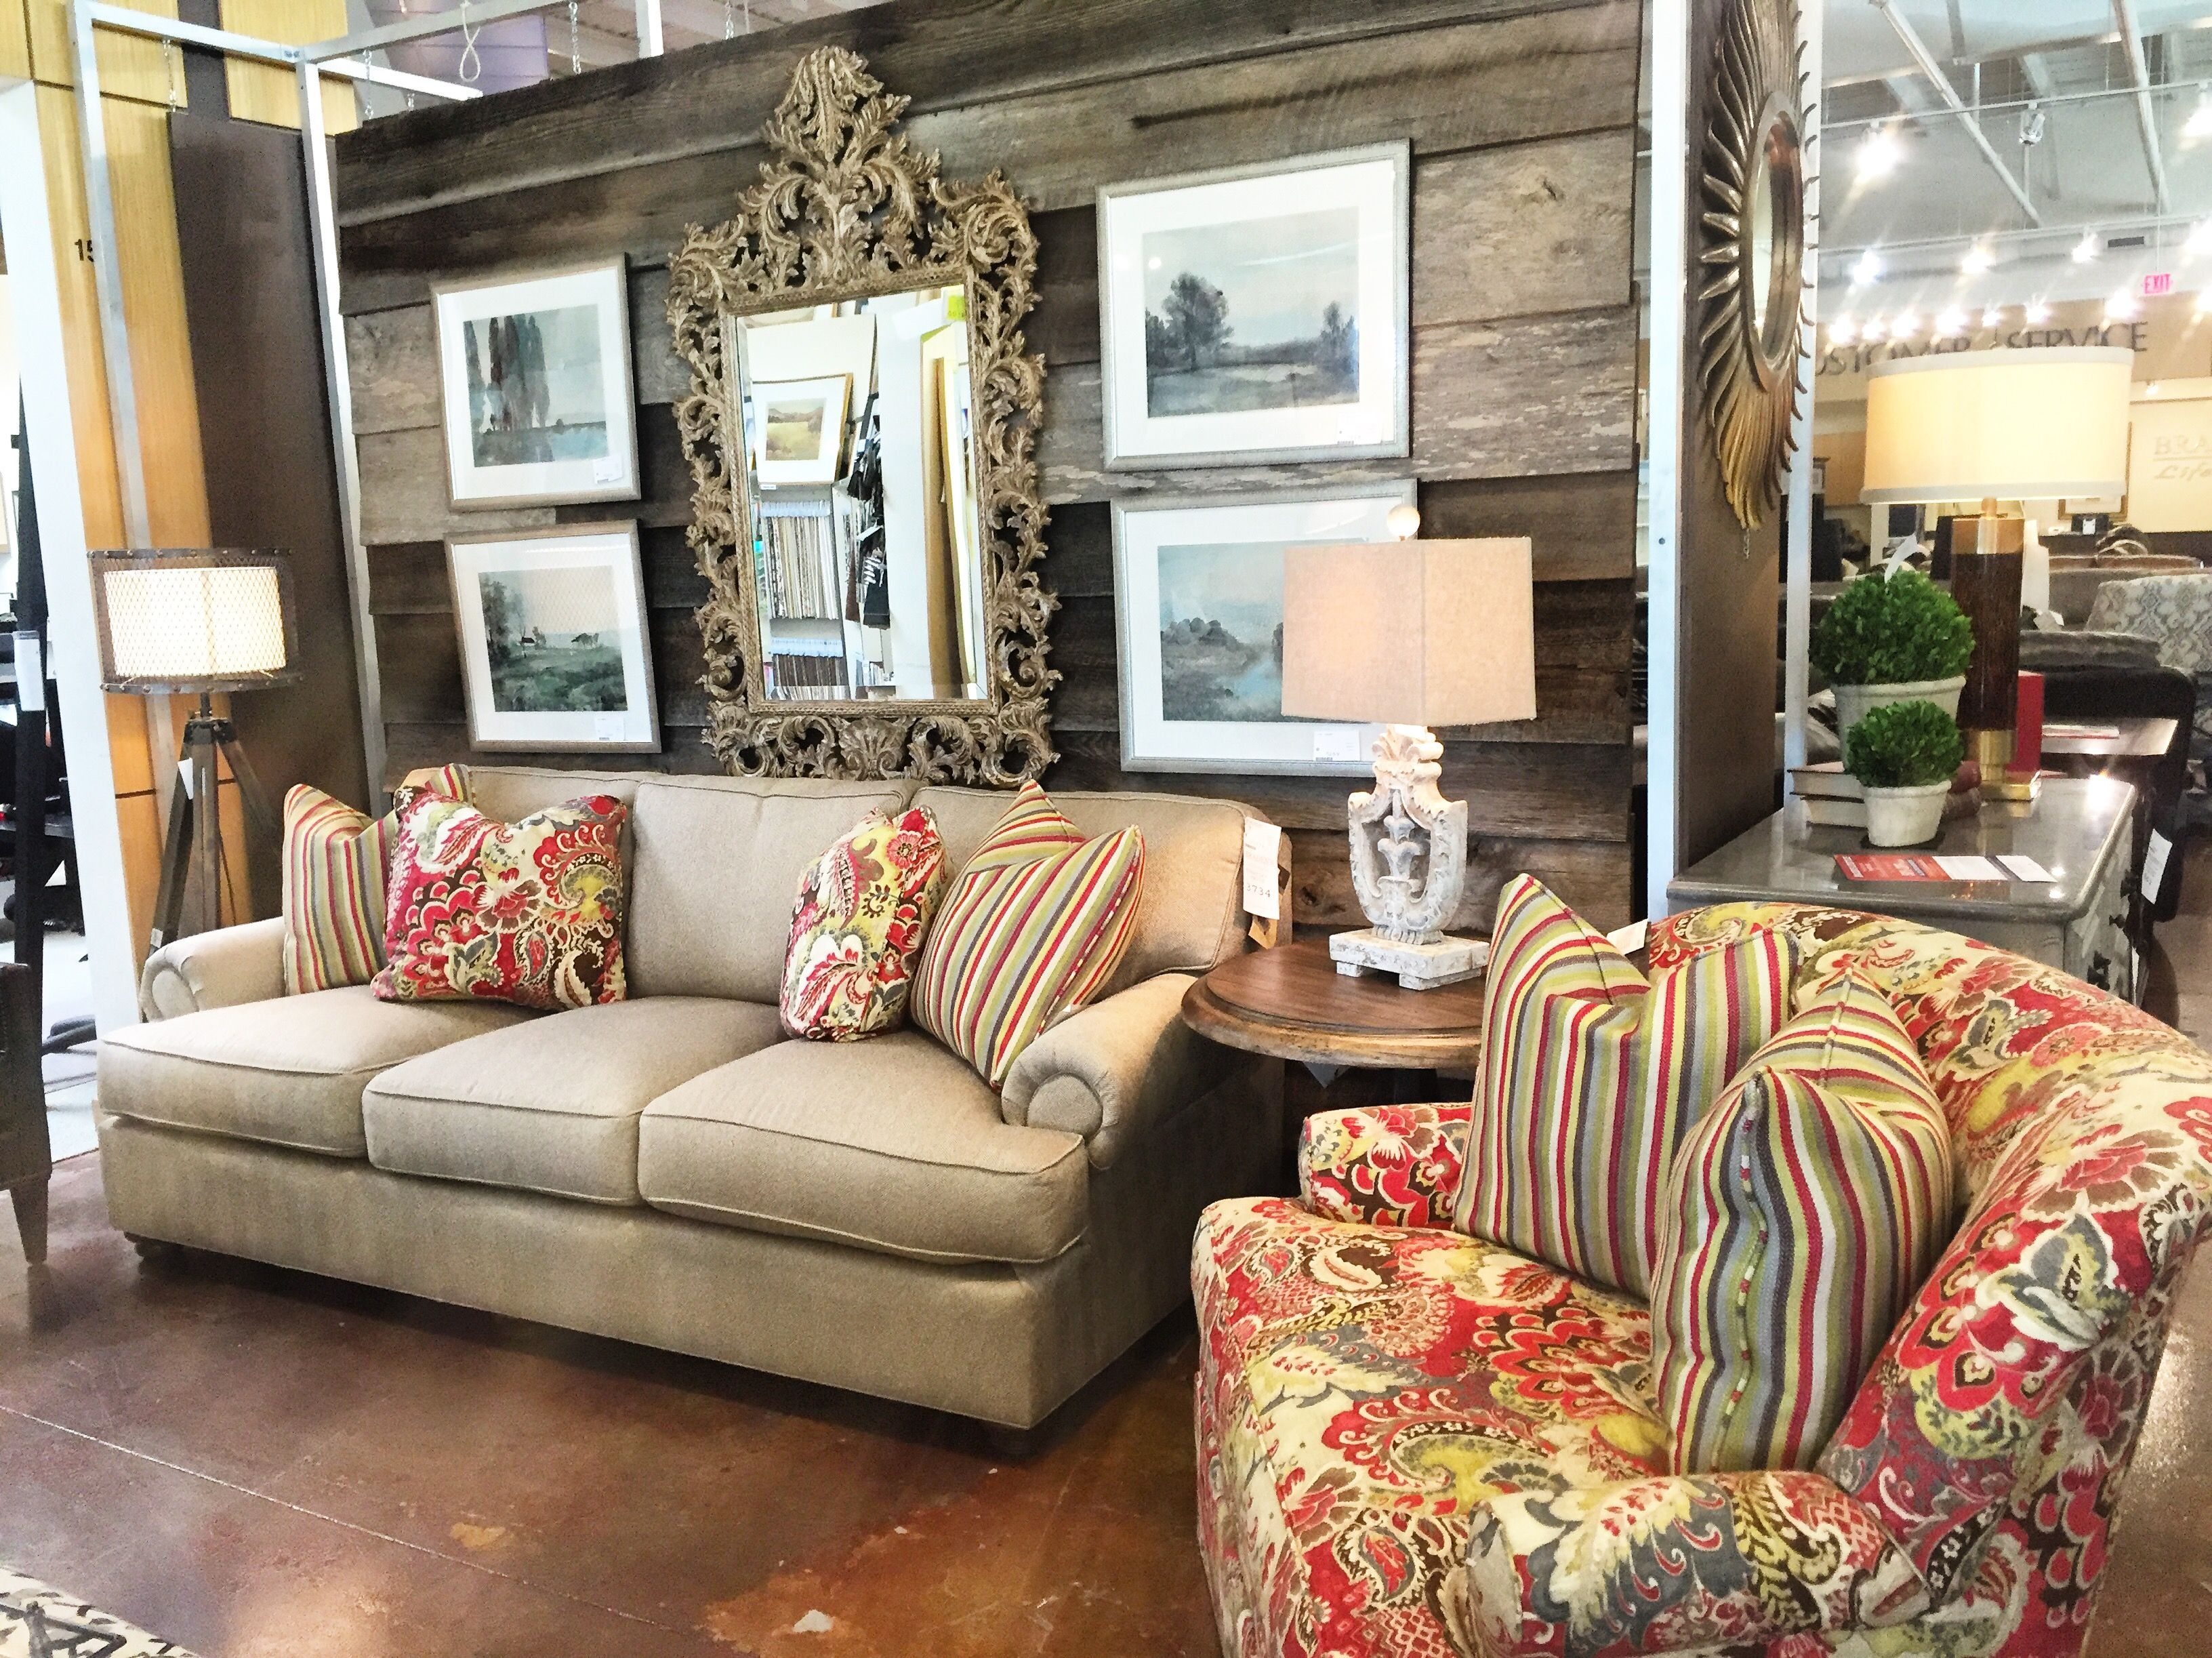 Genial Furniture In Knoxville   Bradenu0027s Lifestyles Furniture   Home Décor   Home  Interiors   Interior Design